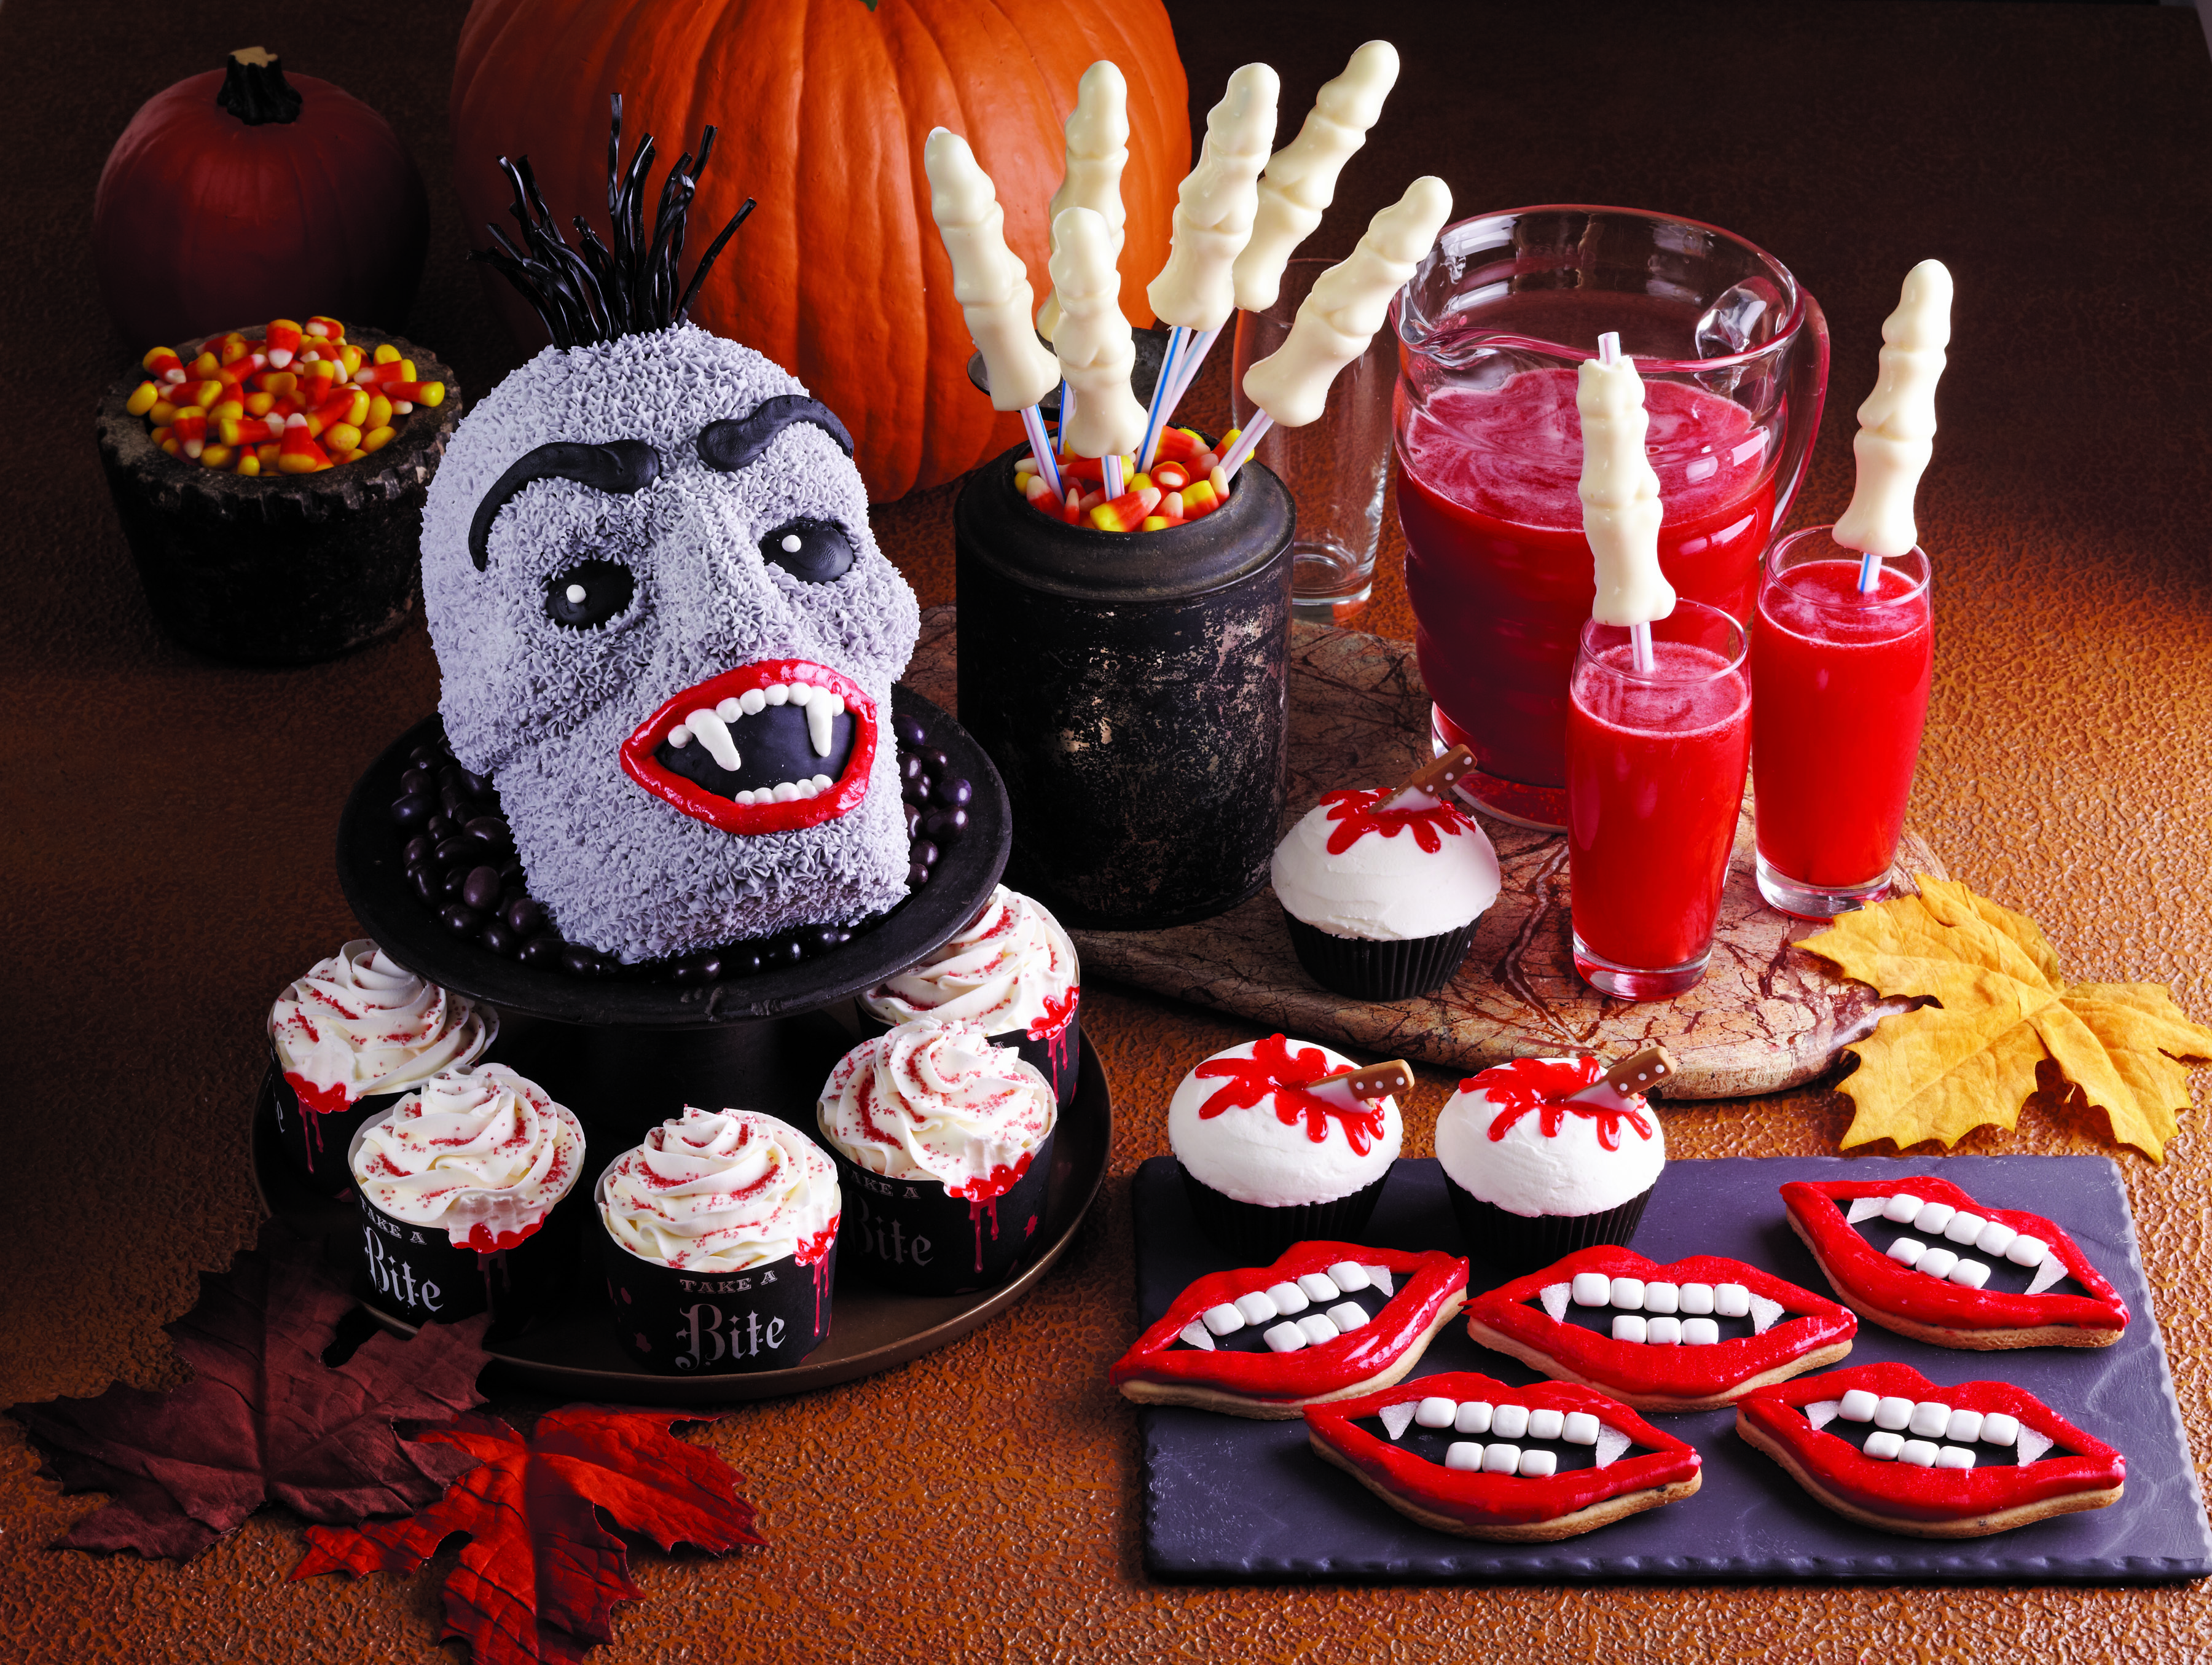 unique halloween food ideas fun halloween recipes for vampire and werewolf shaped treats - Unique Halloween Desserts